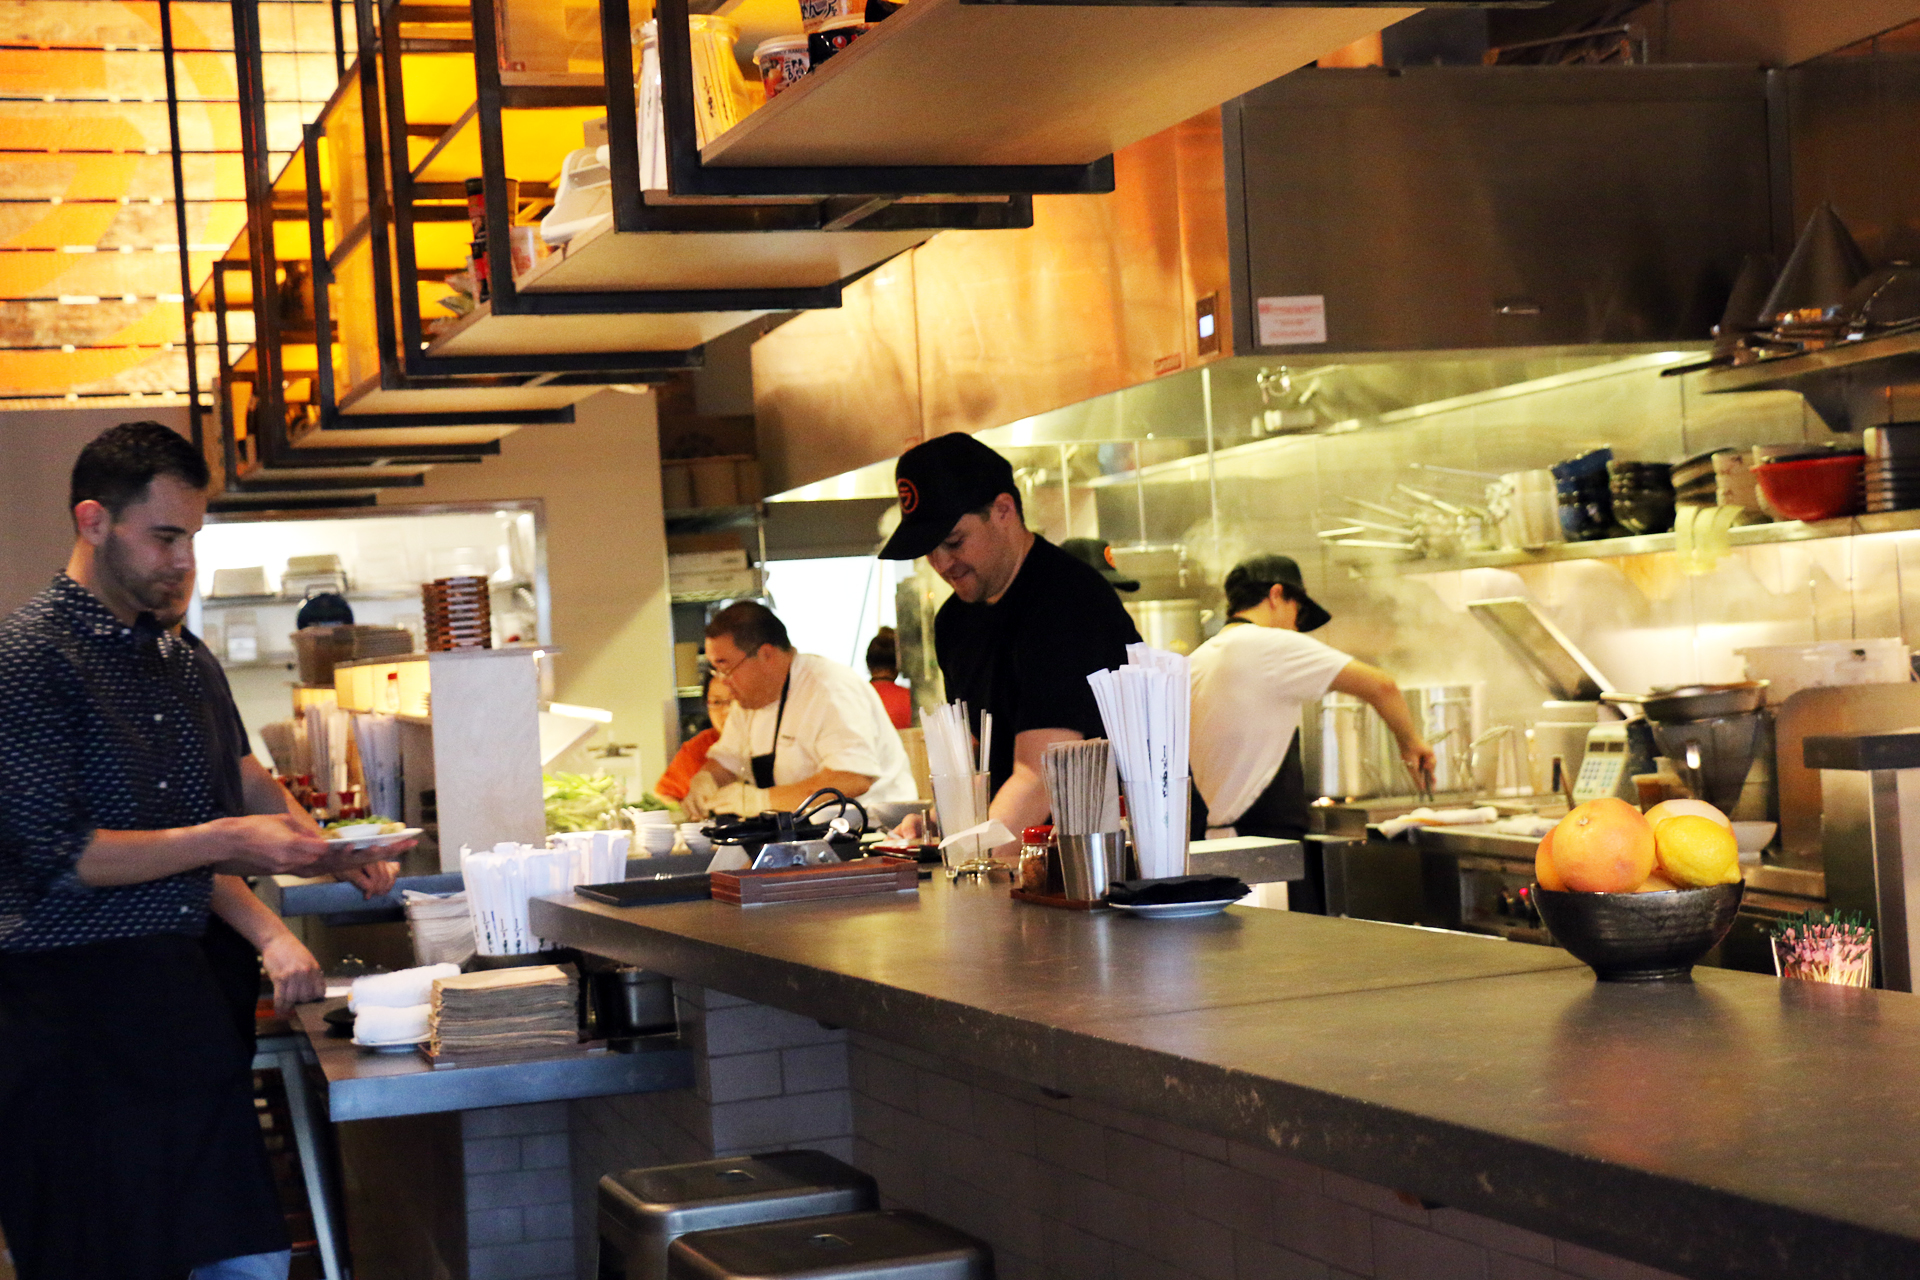 The fast-paced open kitchen at Itani Ramen.